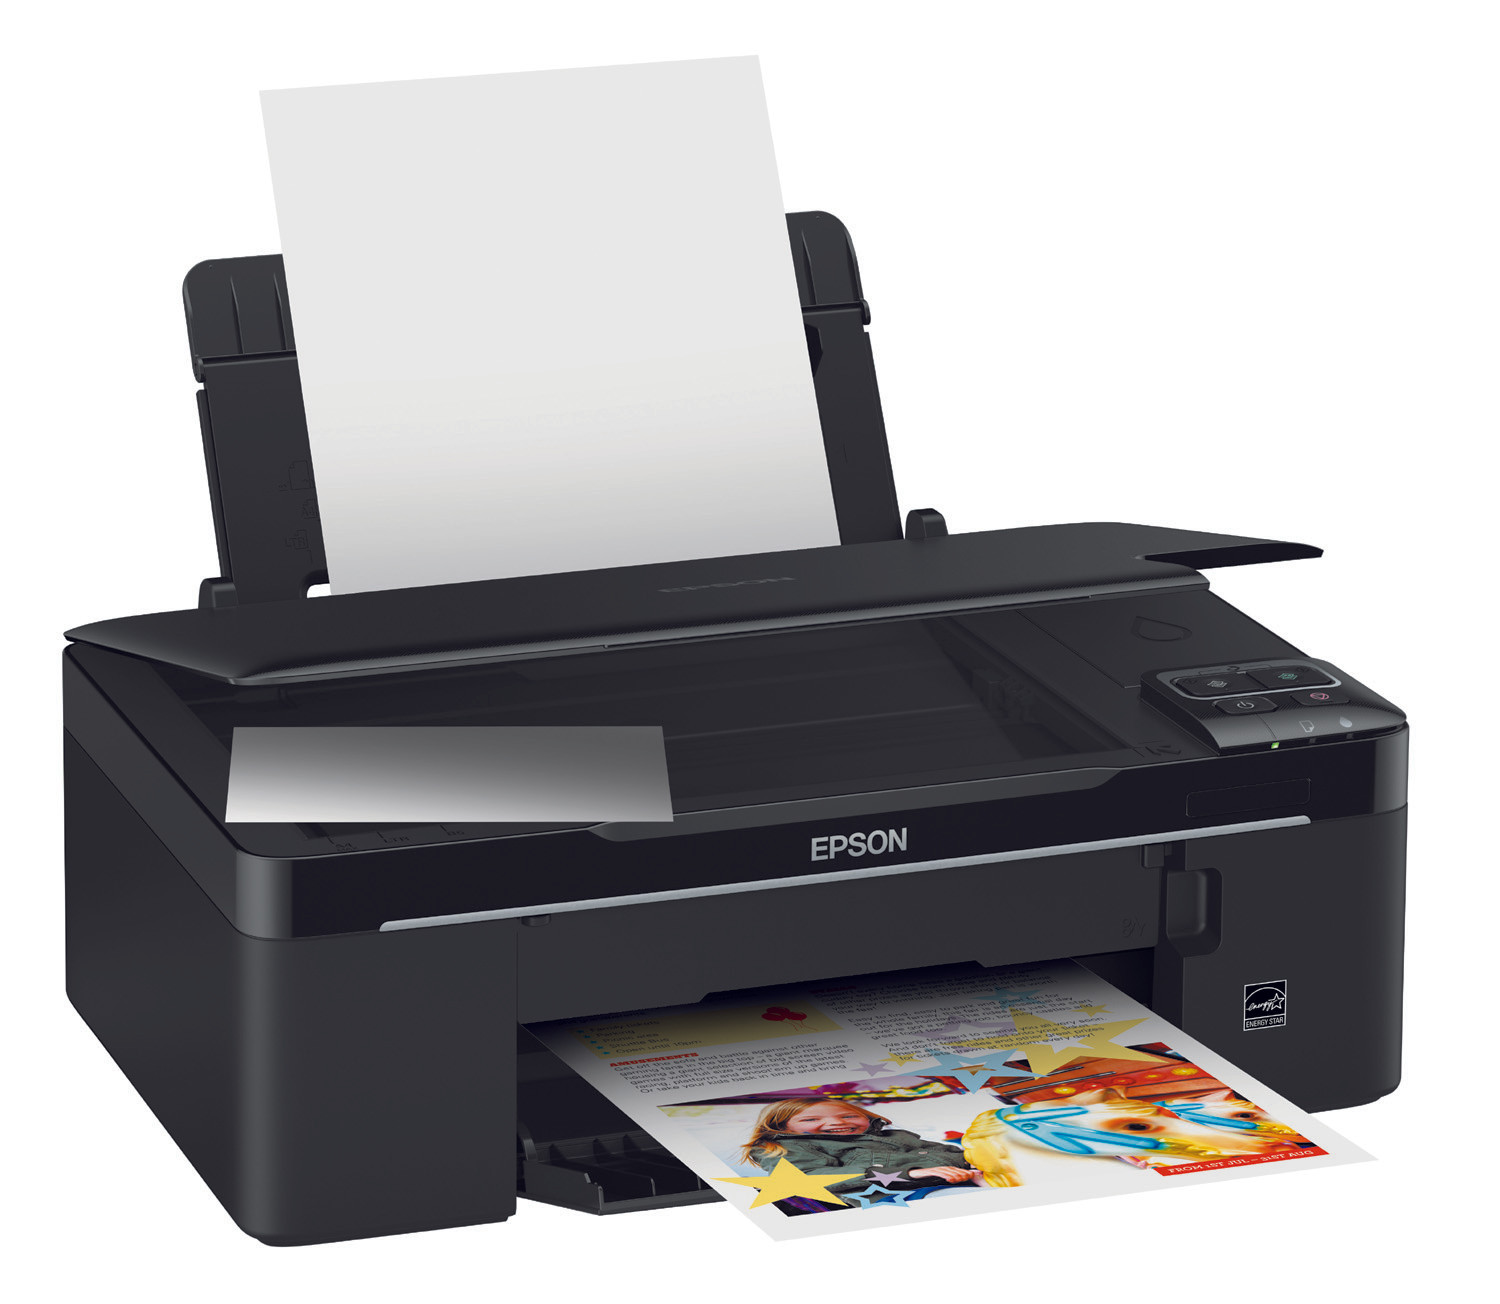 Epson stylus c45 driver for windows vista free download